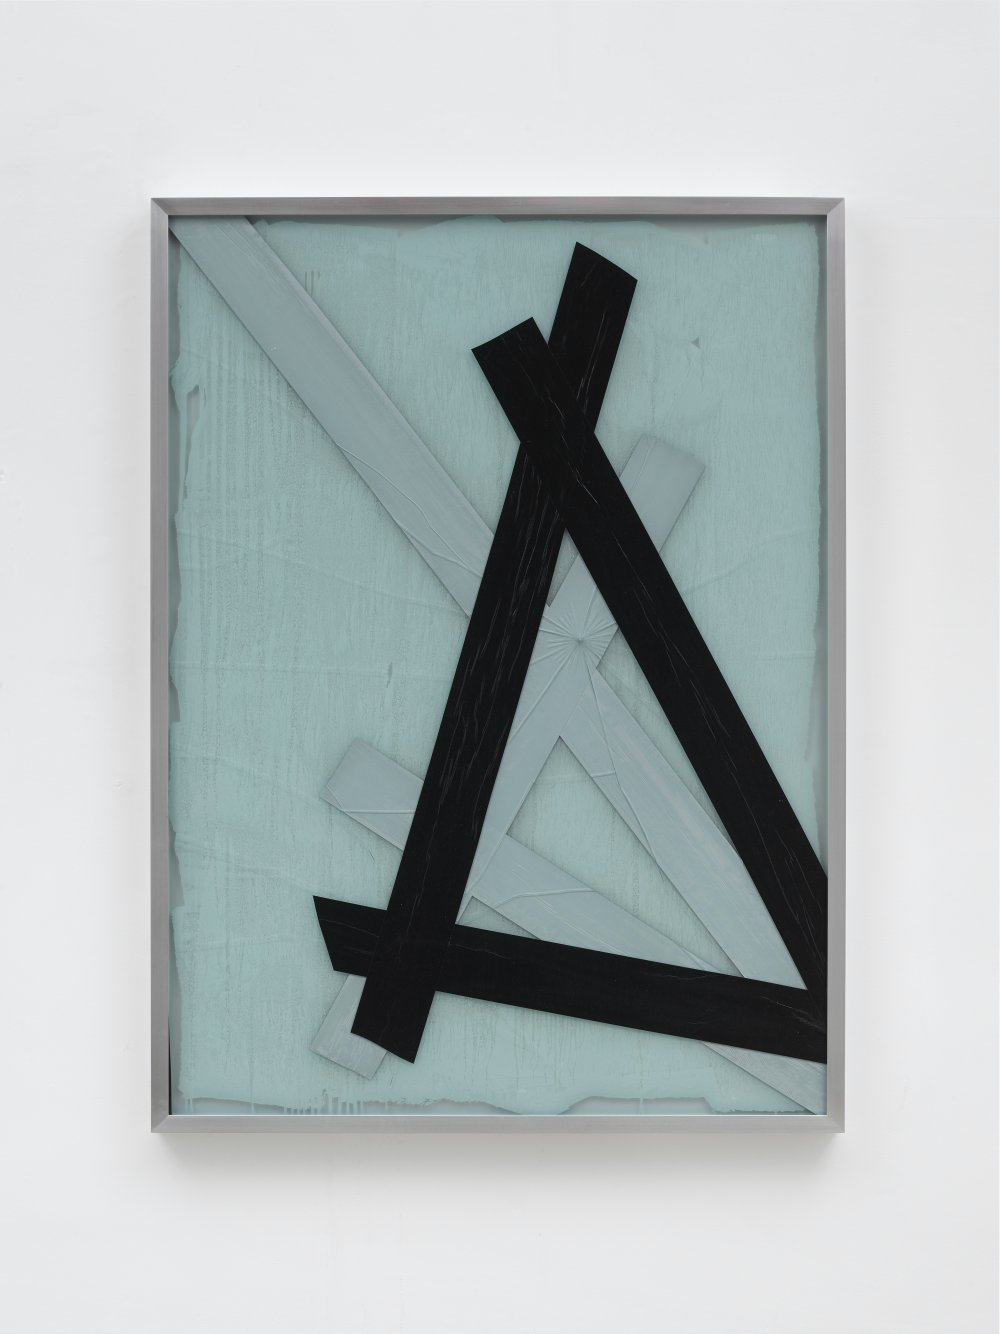 By physical or cognitive means (Broken Window Theory 13 May)